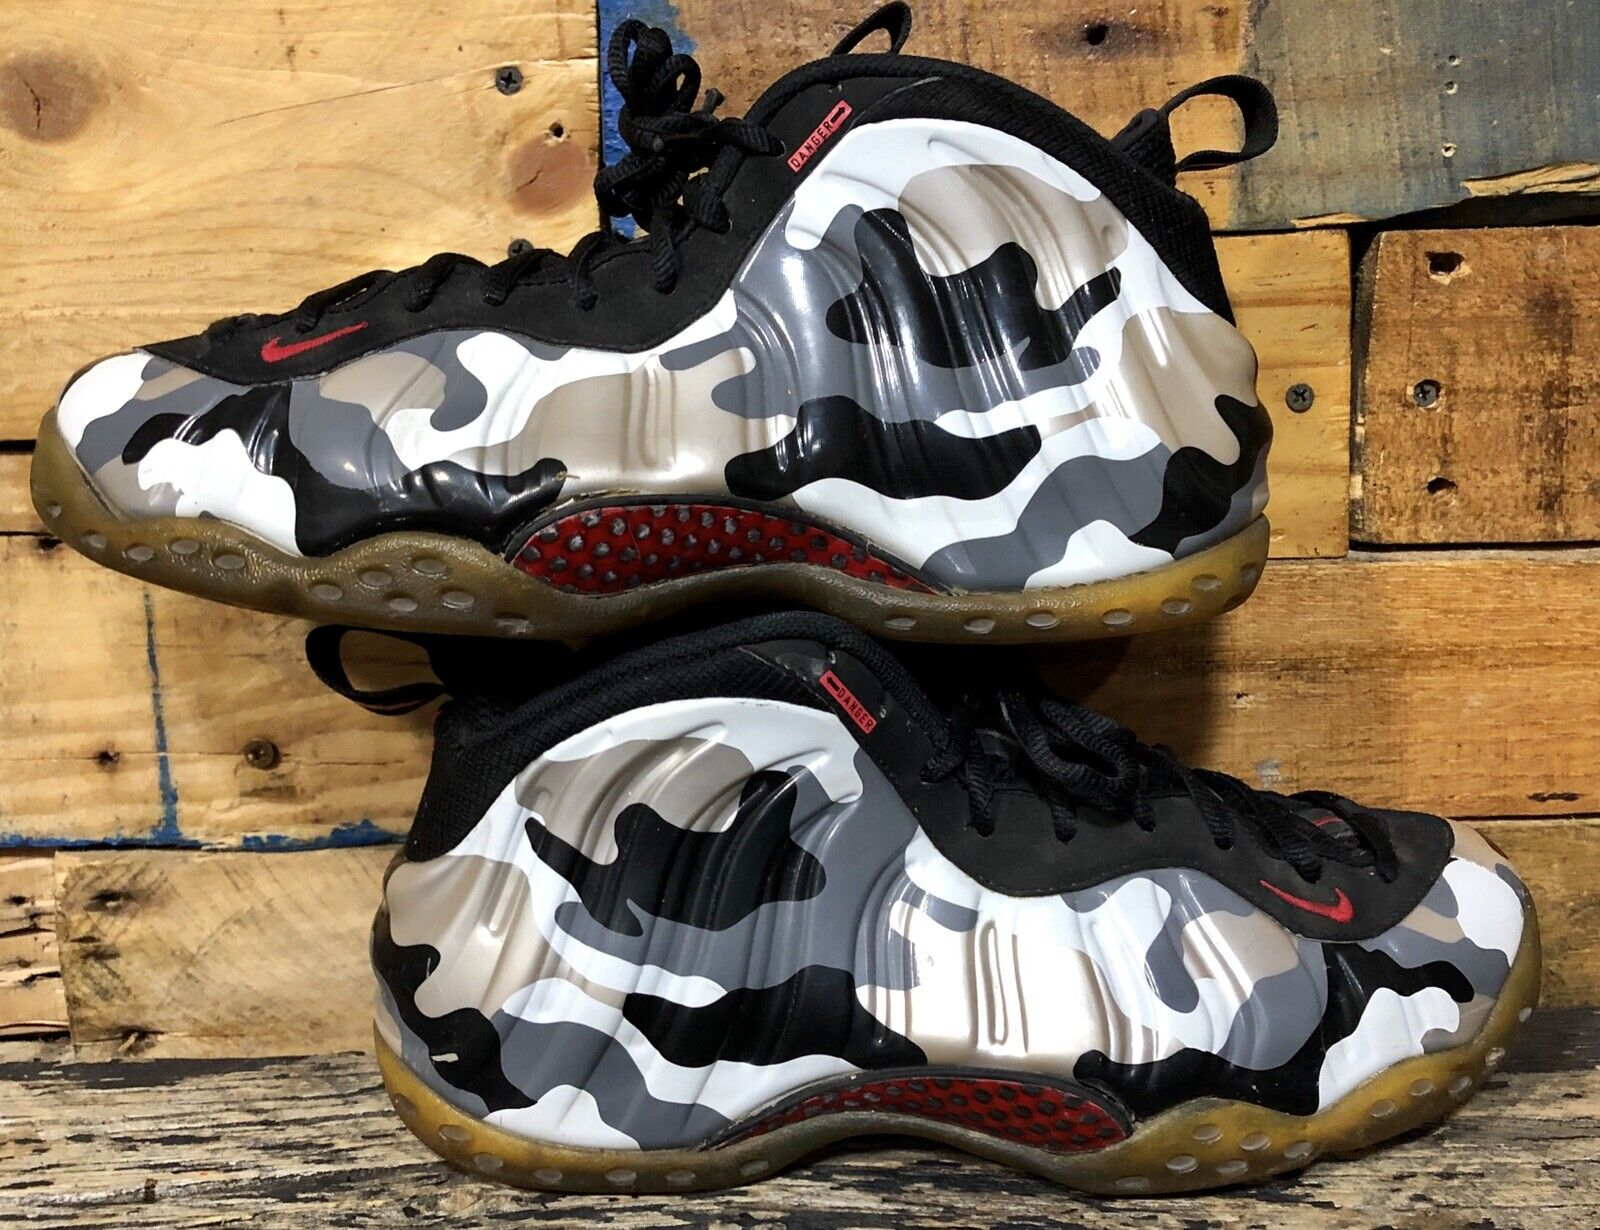 newest 23d58 75cb5 Nike Foamposite One Fighter Jet Sz11 BLACK HYPER RED 575420 001 Camo Read D  Air nqnaet2949-Men s Athletic Shoes